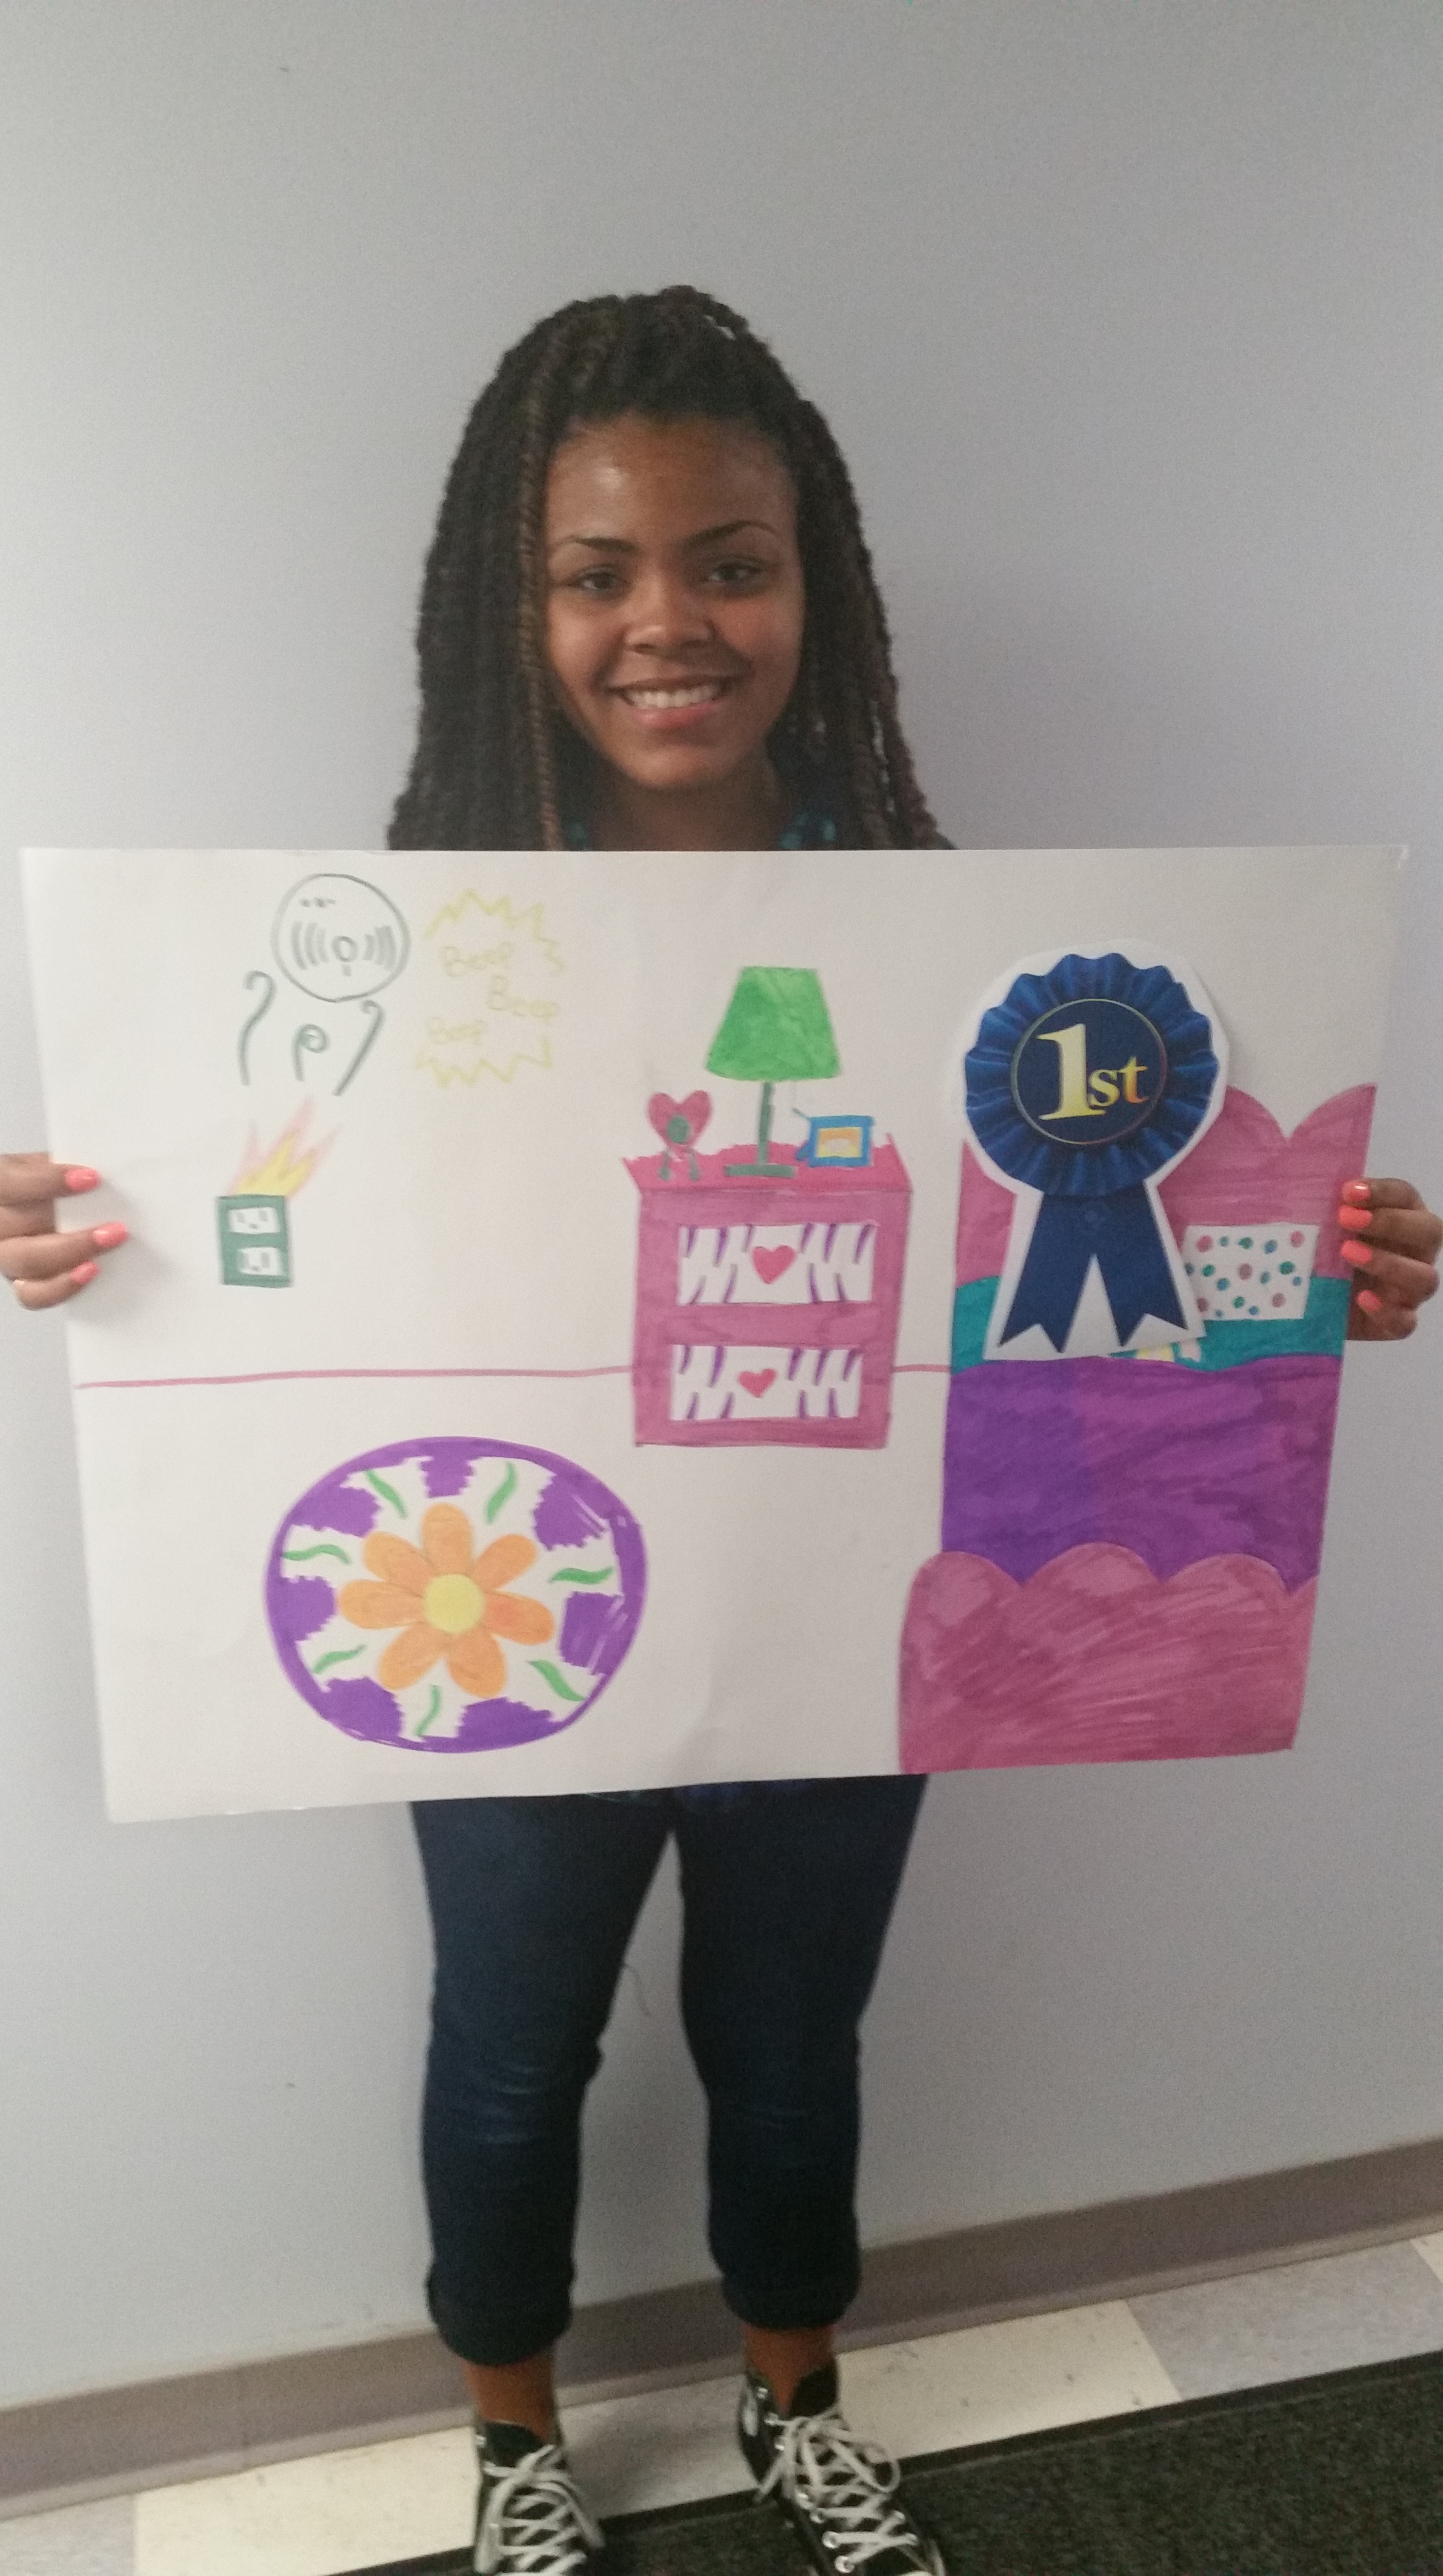 fire safety poster contest winners announced - stark metropolitan